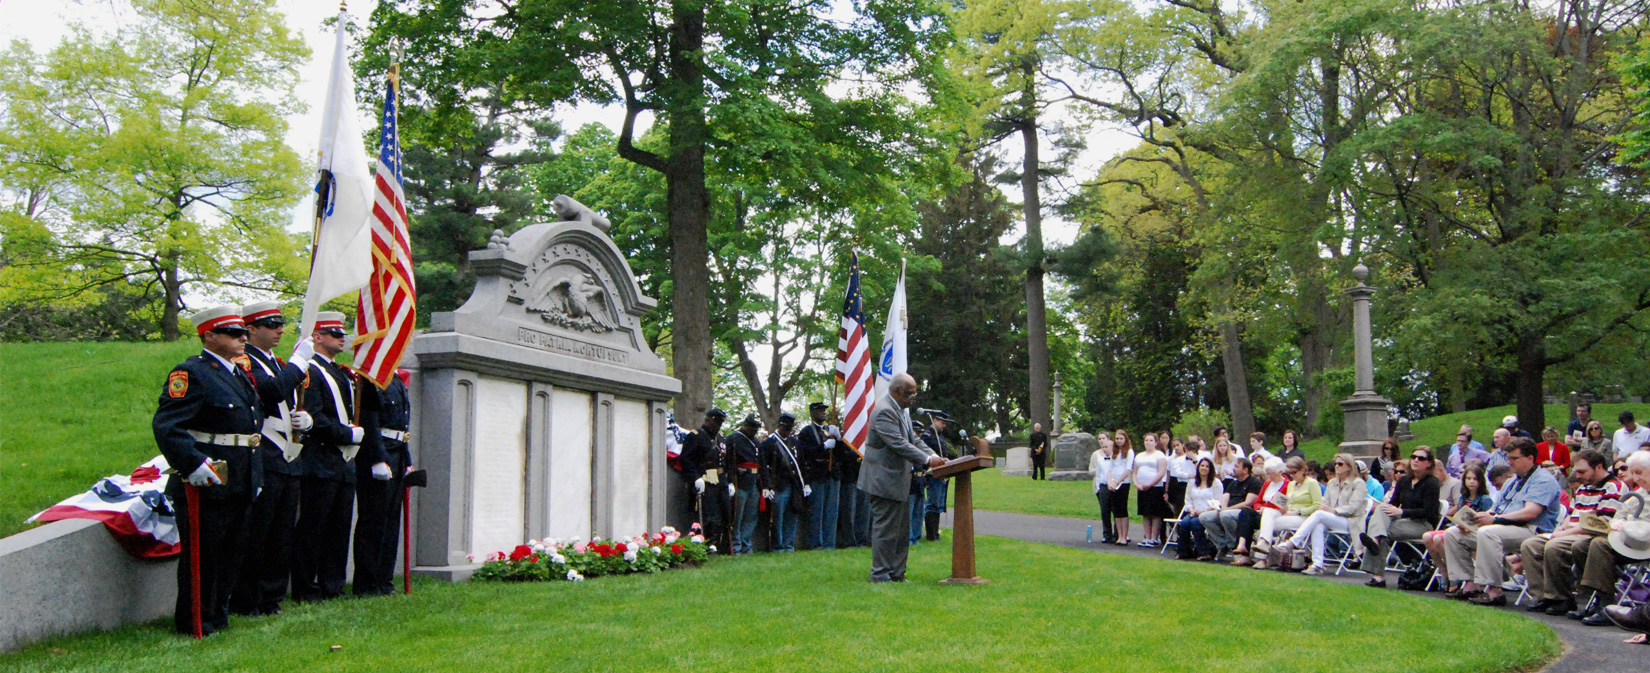 Newton Cemetery Civil War Soldiers Monument Re-dedication Ceremony